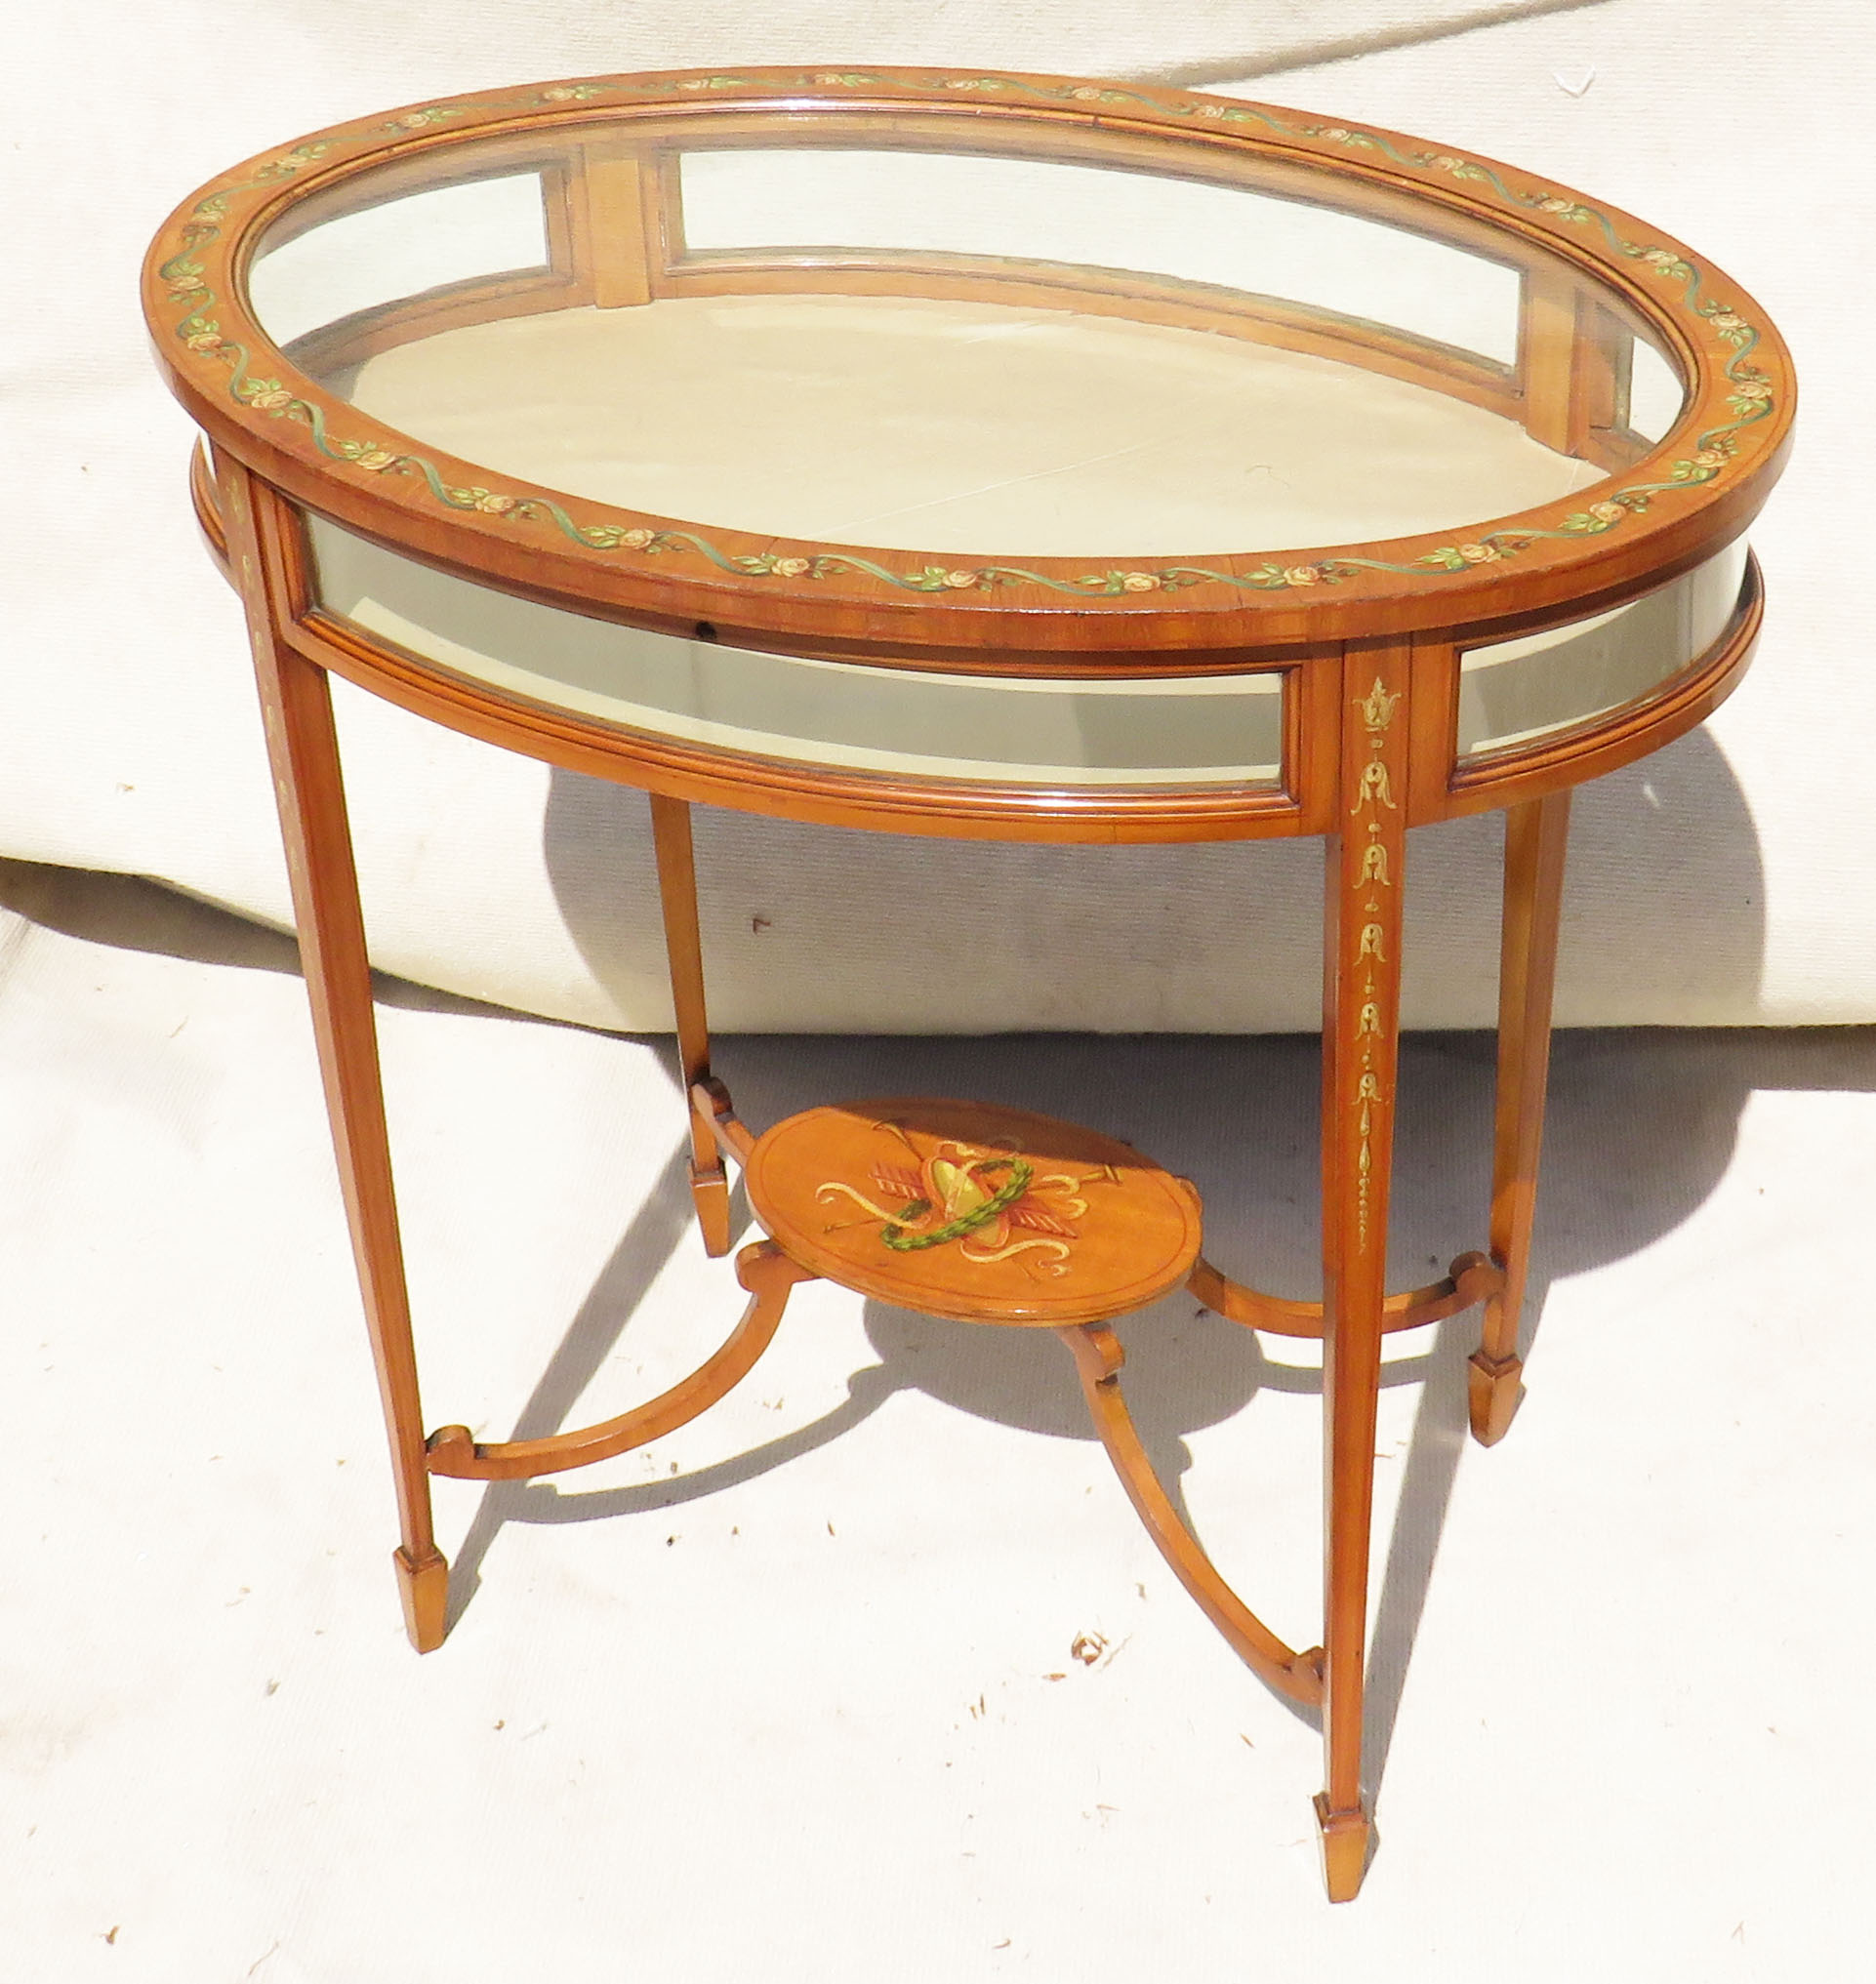 Lot 37 - Late 19th Century satinwood oval bijouterie display table with painted & polychrome decoration